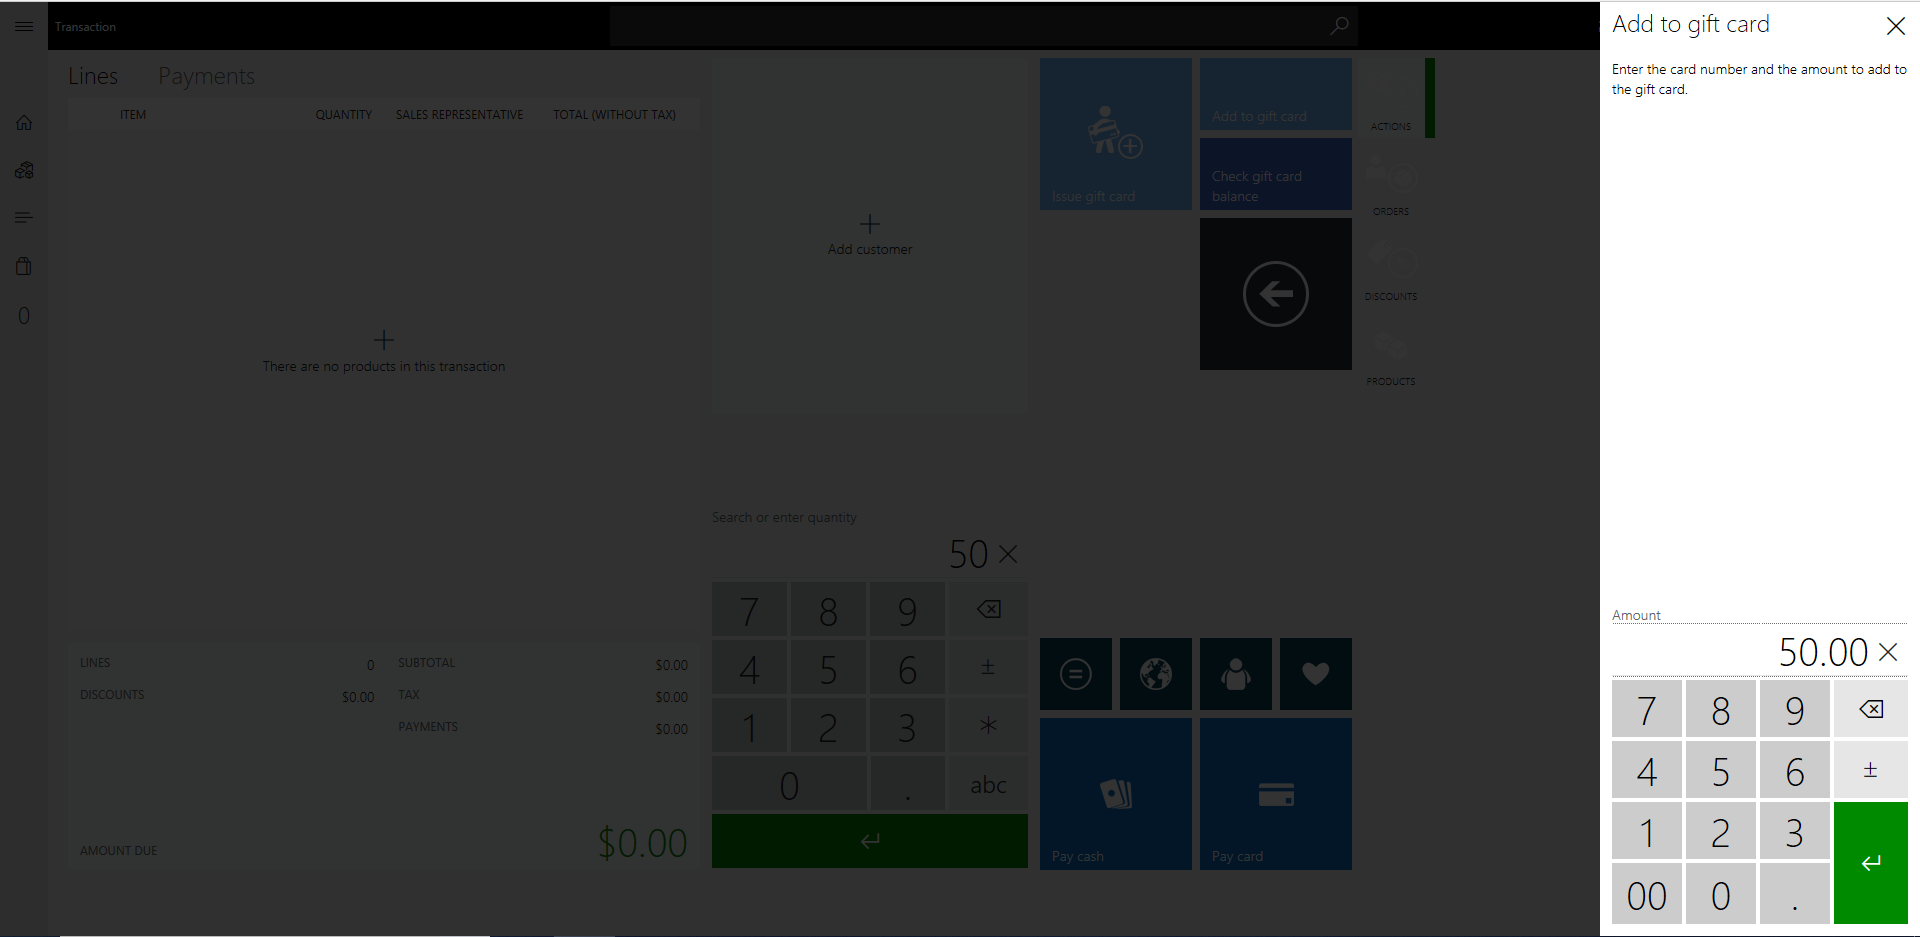 Adding Funds to a Gift Card in Dynamics 365 for Retail POS; Gift Card Top Up